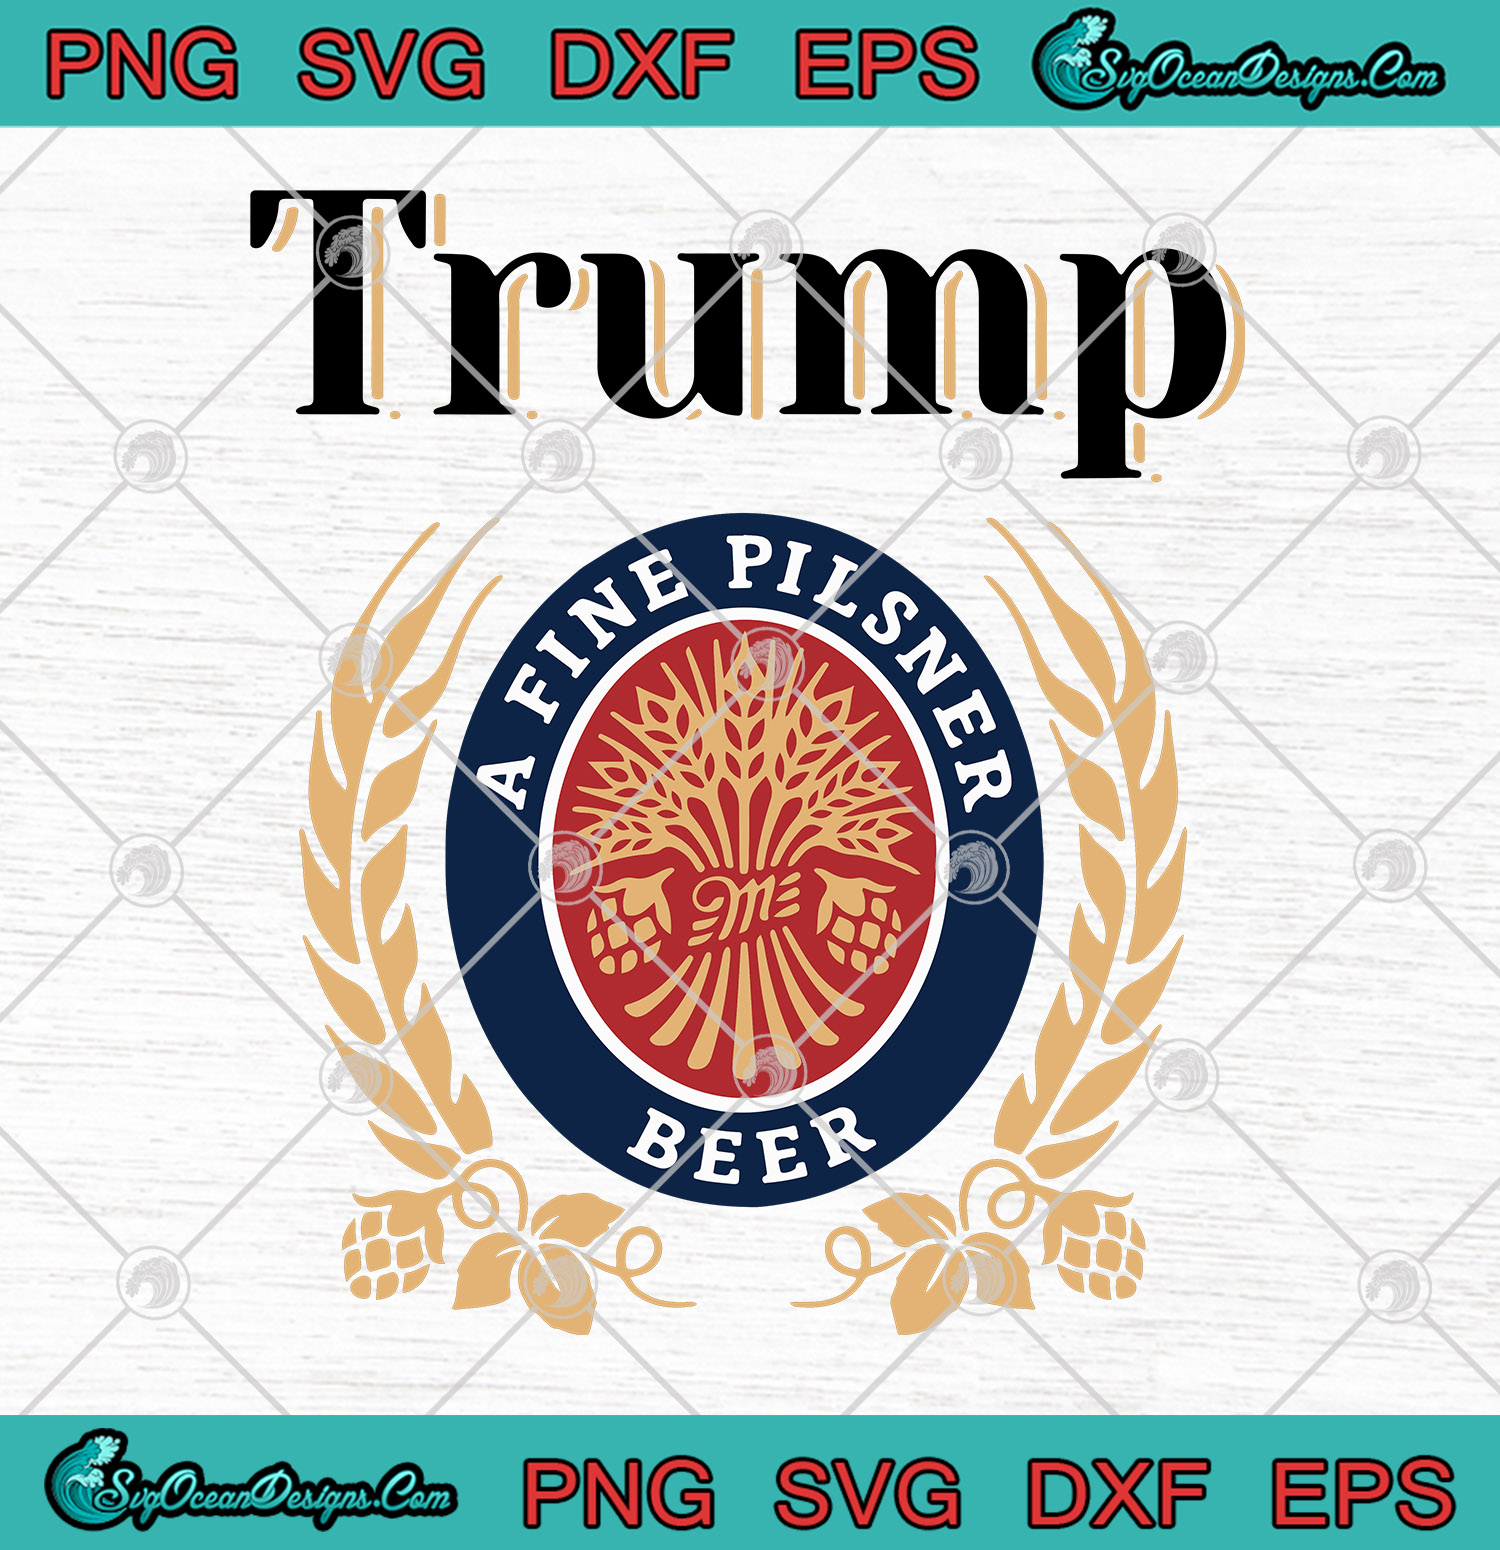 Donald Trump Trump A Fine Pilsner Beer Svg Png Dxf Eps Cutting File Cricut Silhouette Art Designs Digital Download